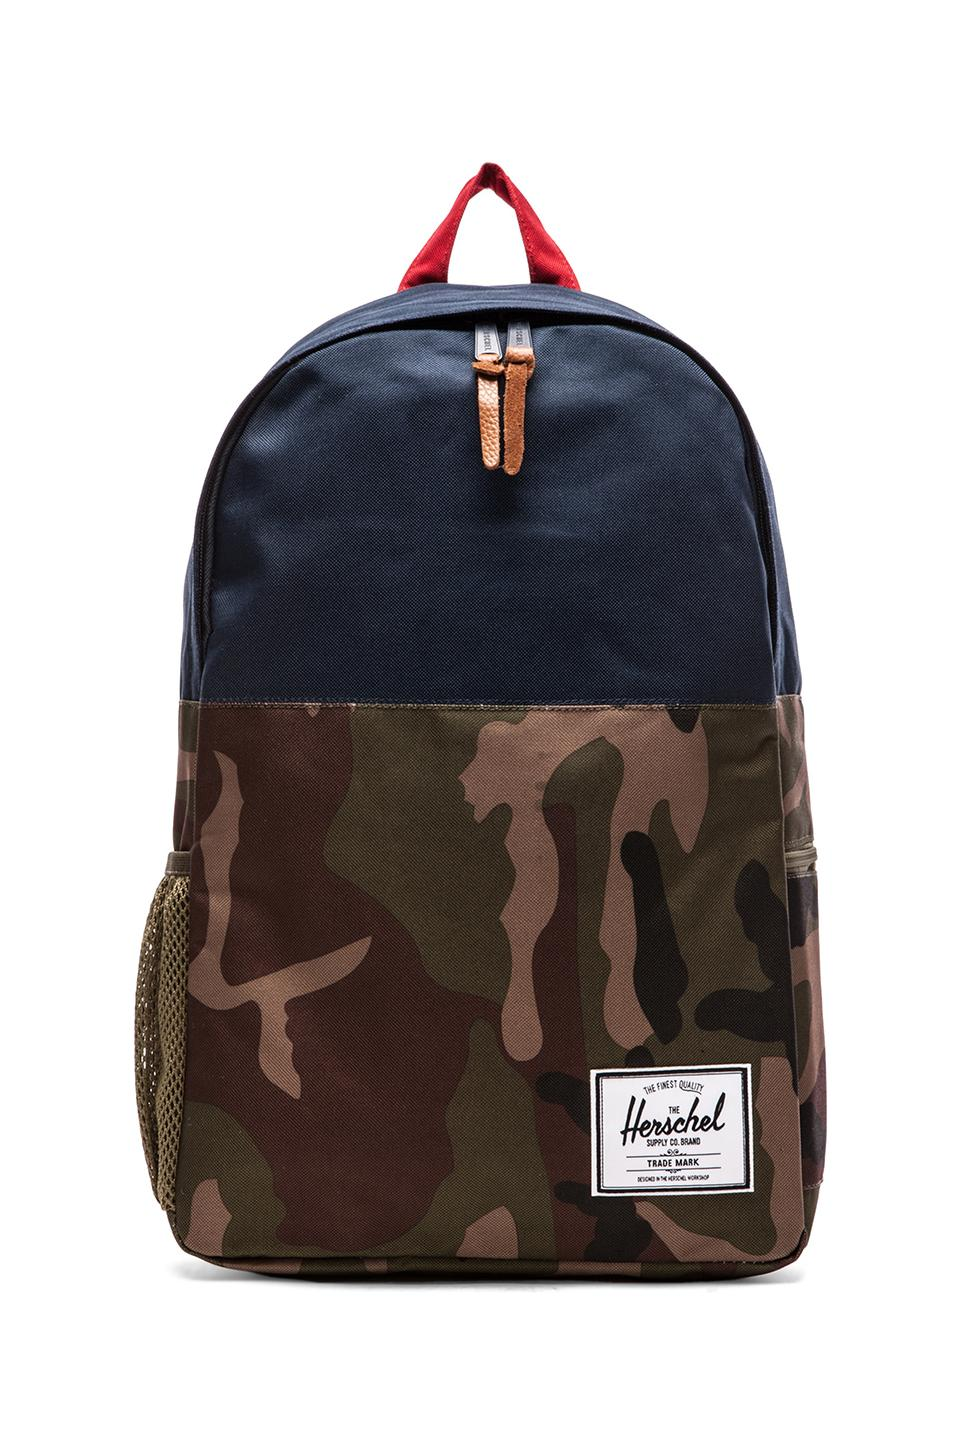 Herschel Supply Co. Jasper Backpack in Woodland Camo/ Navy/ Red